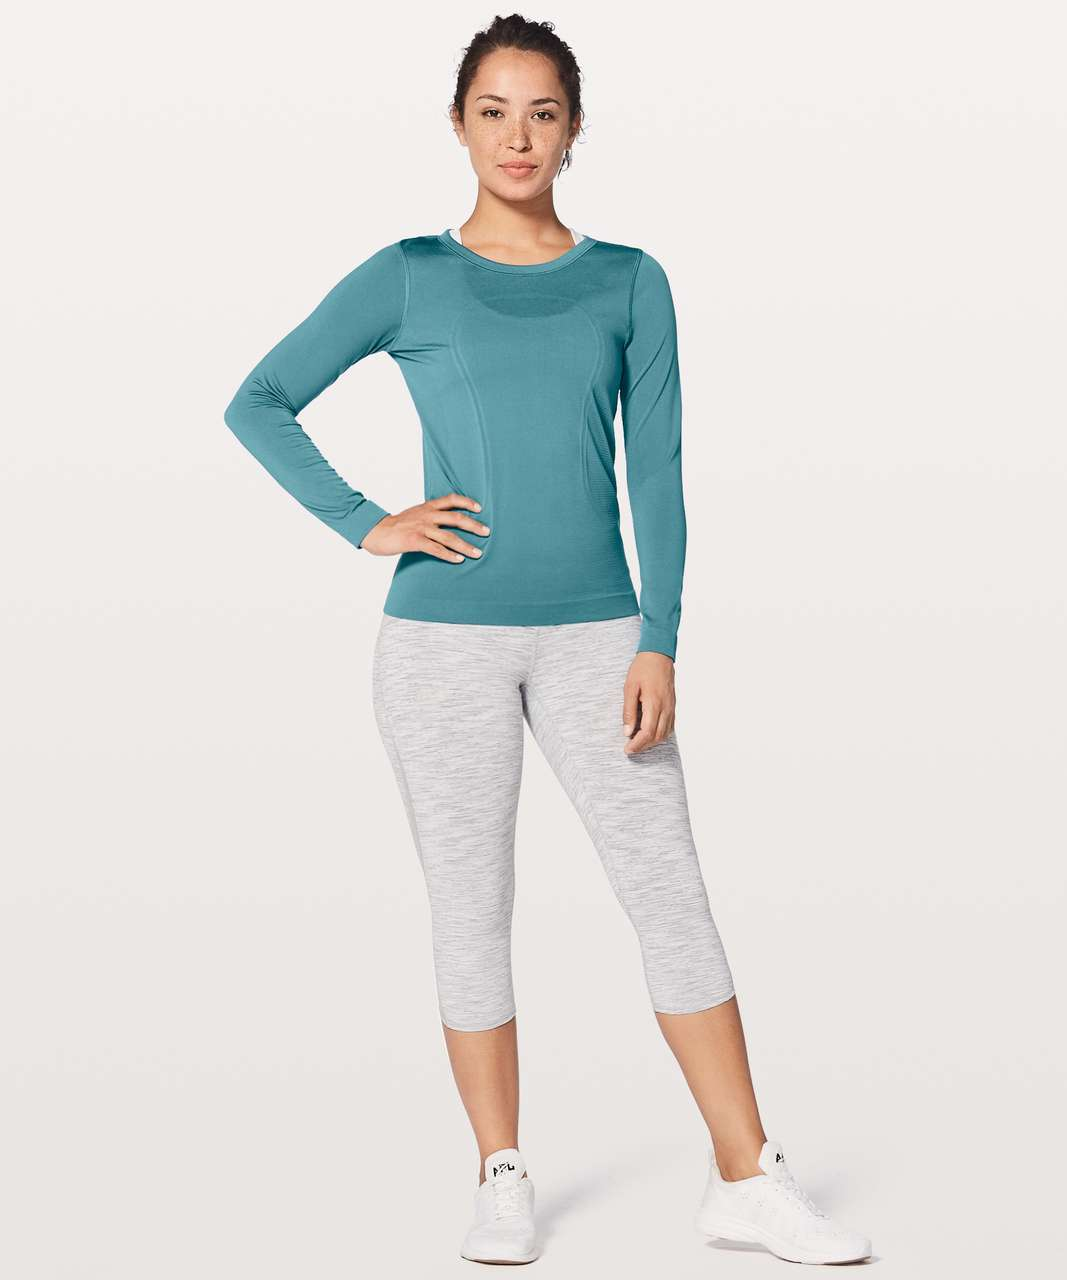 Lululemon Swiftly Tech Long Sleeve (Breeze) *Relaxed Fit - Persian Blue / Persian Blue